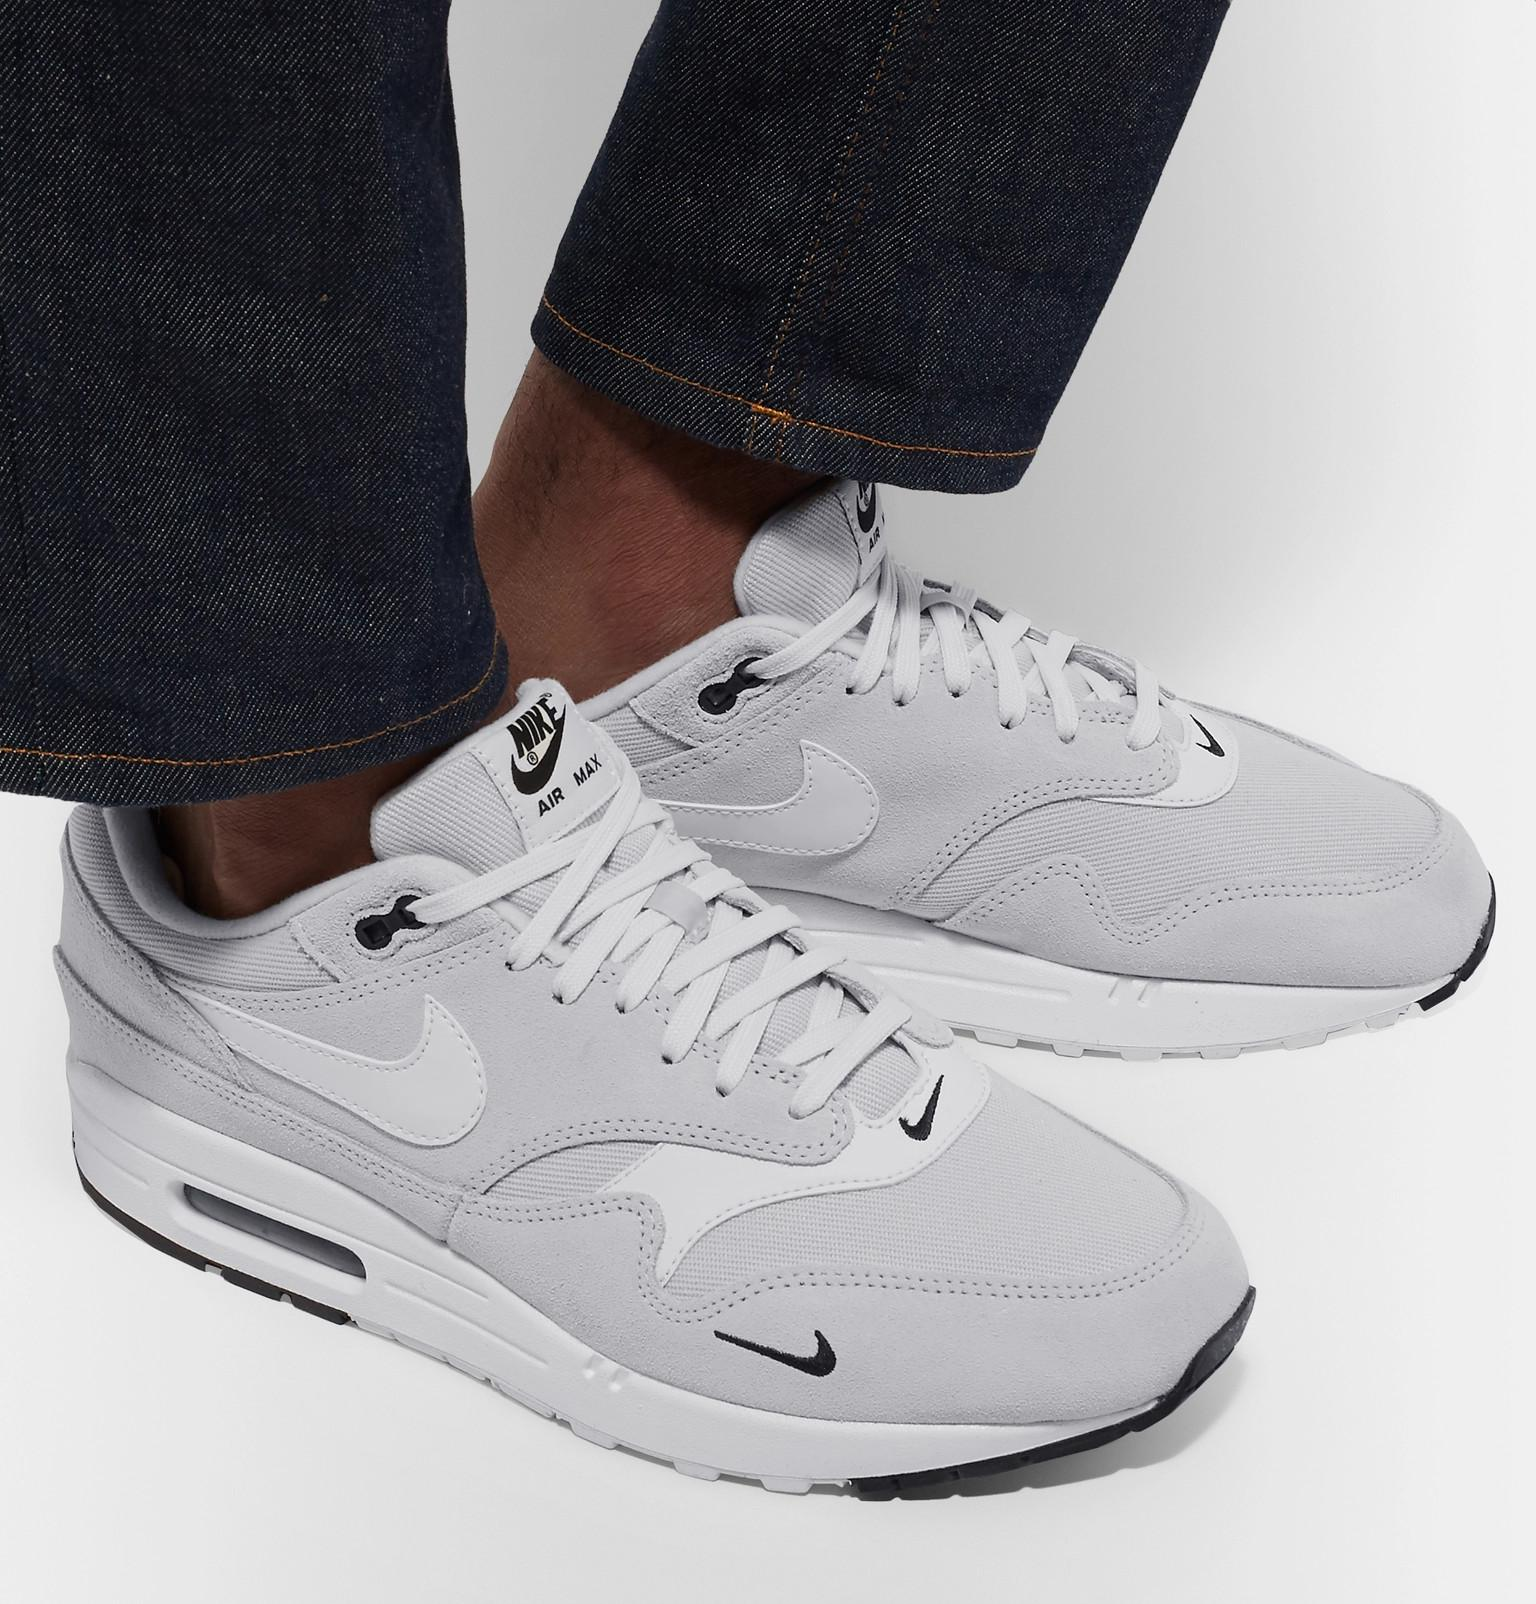 Nike Air Max 1 Premium Leather-trimmed Suede And Mesh Sneakers in ...